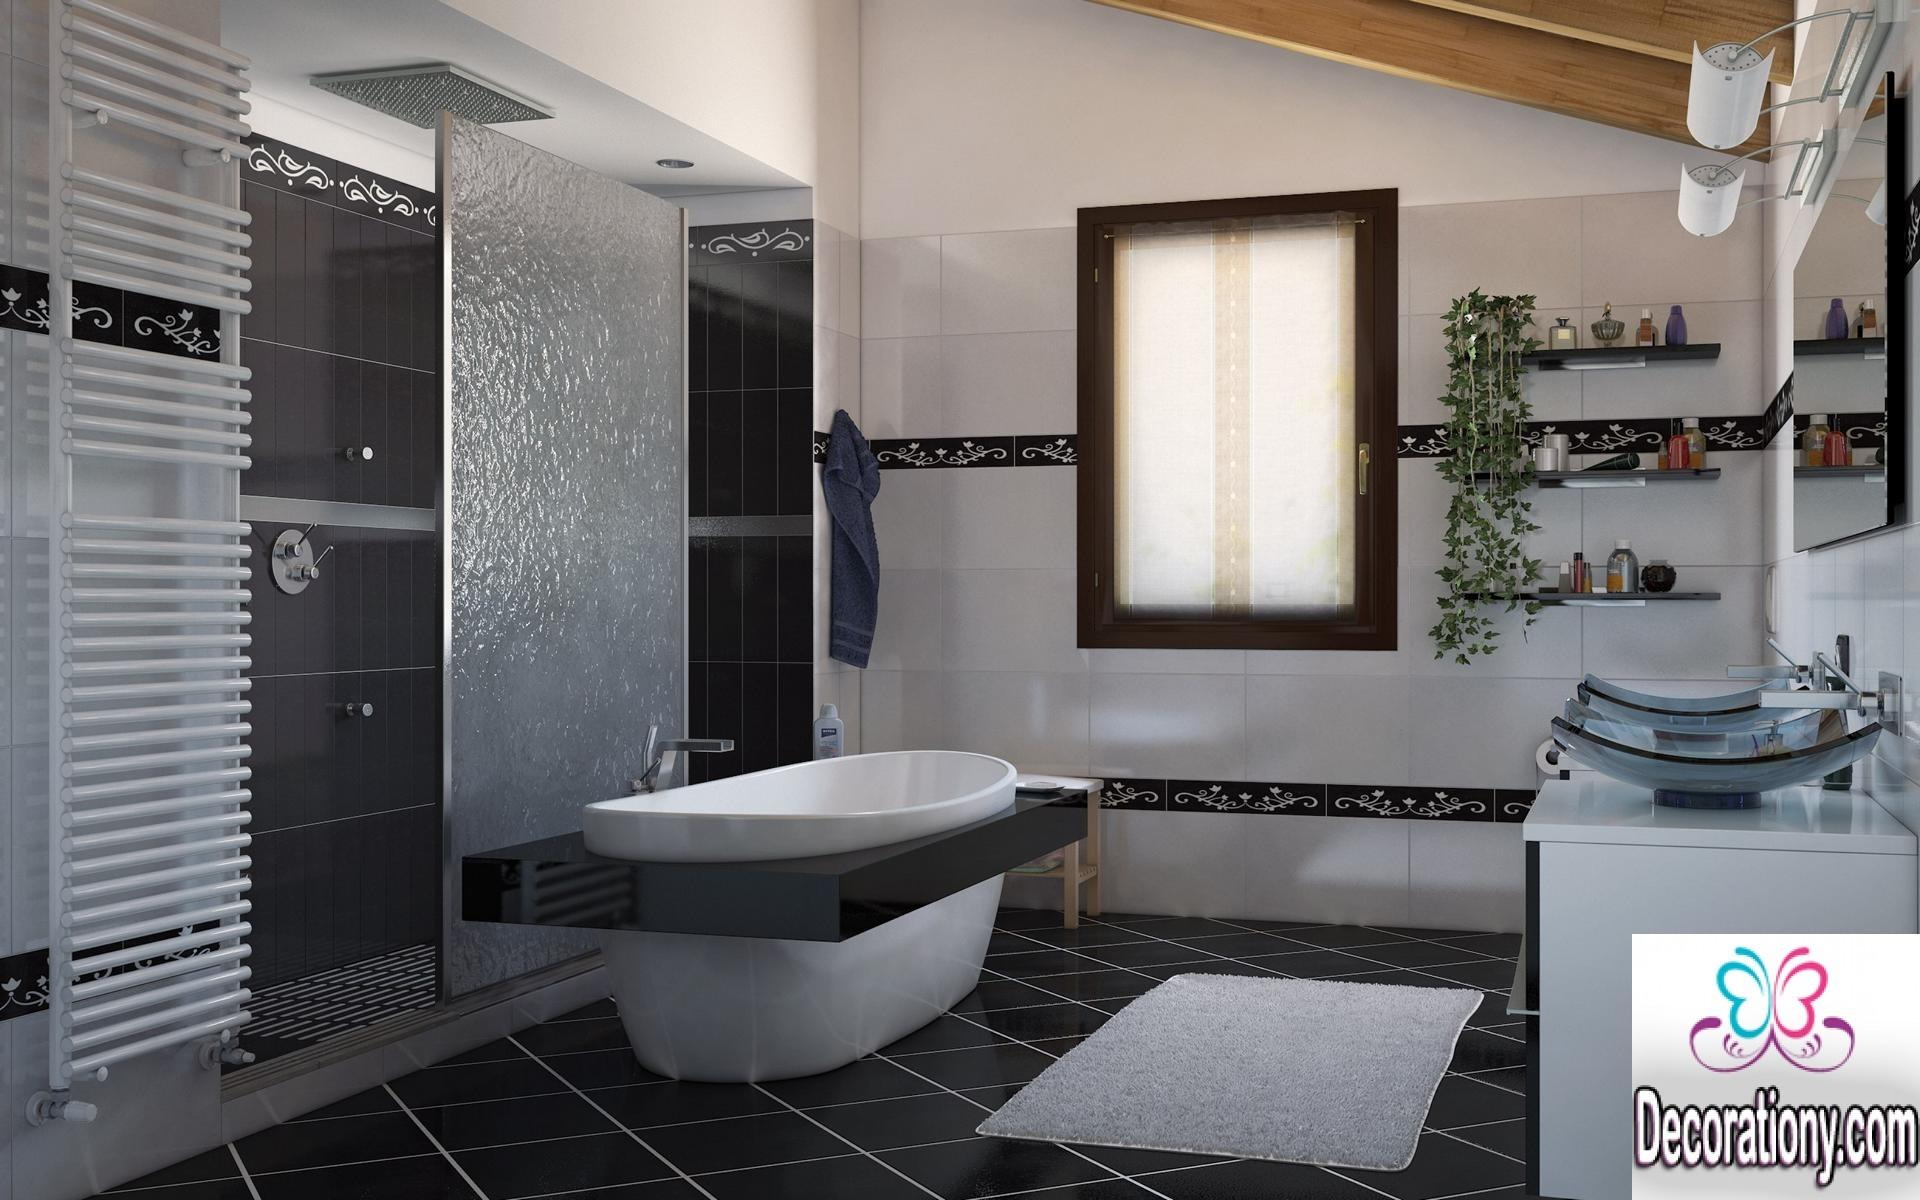 Modern Bathroom Design Trends 2017 Decorationy